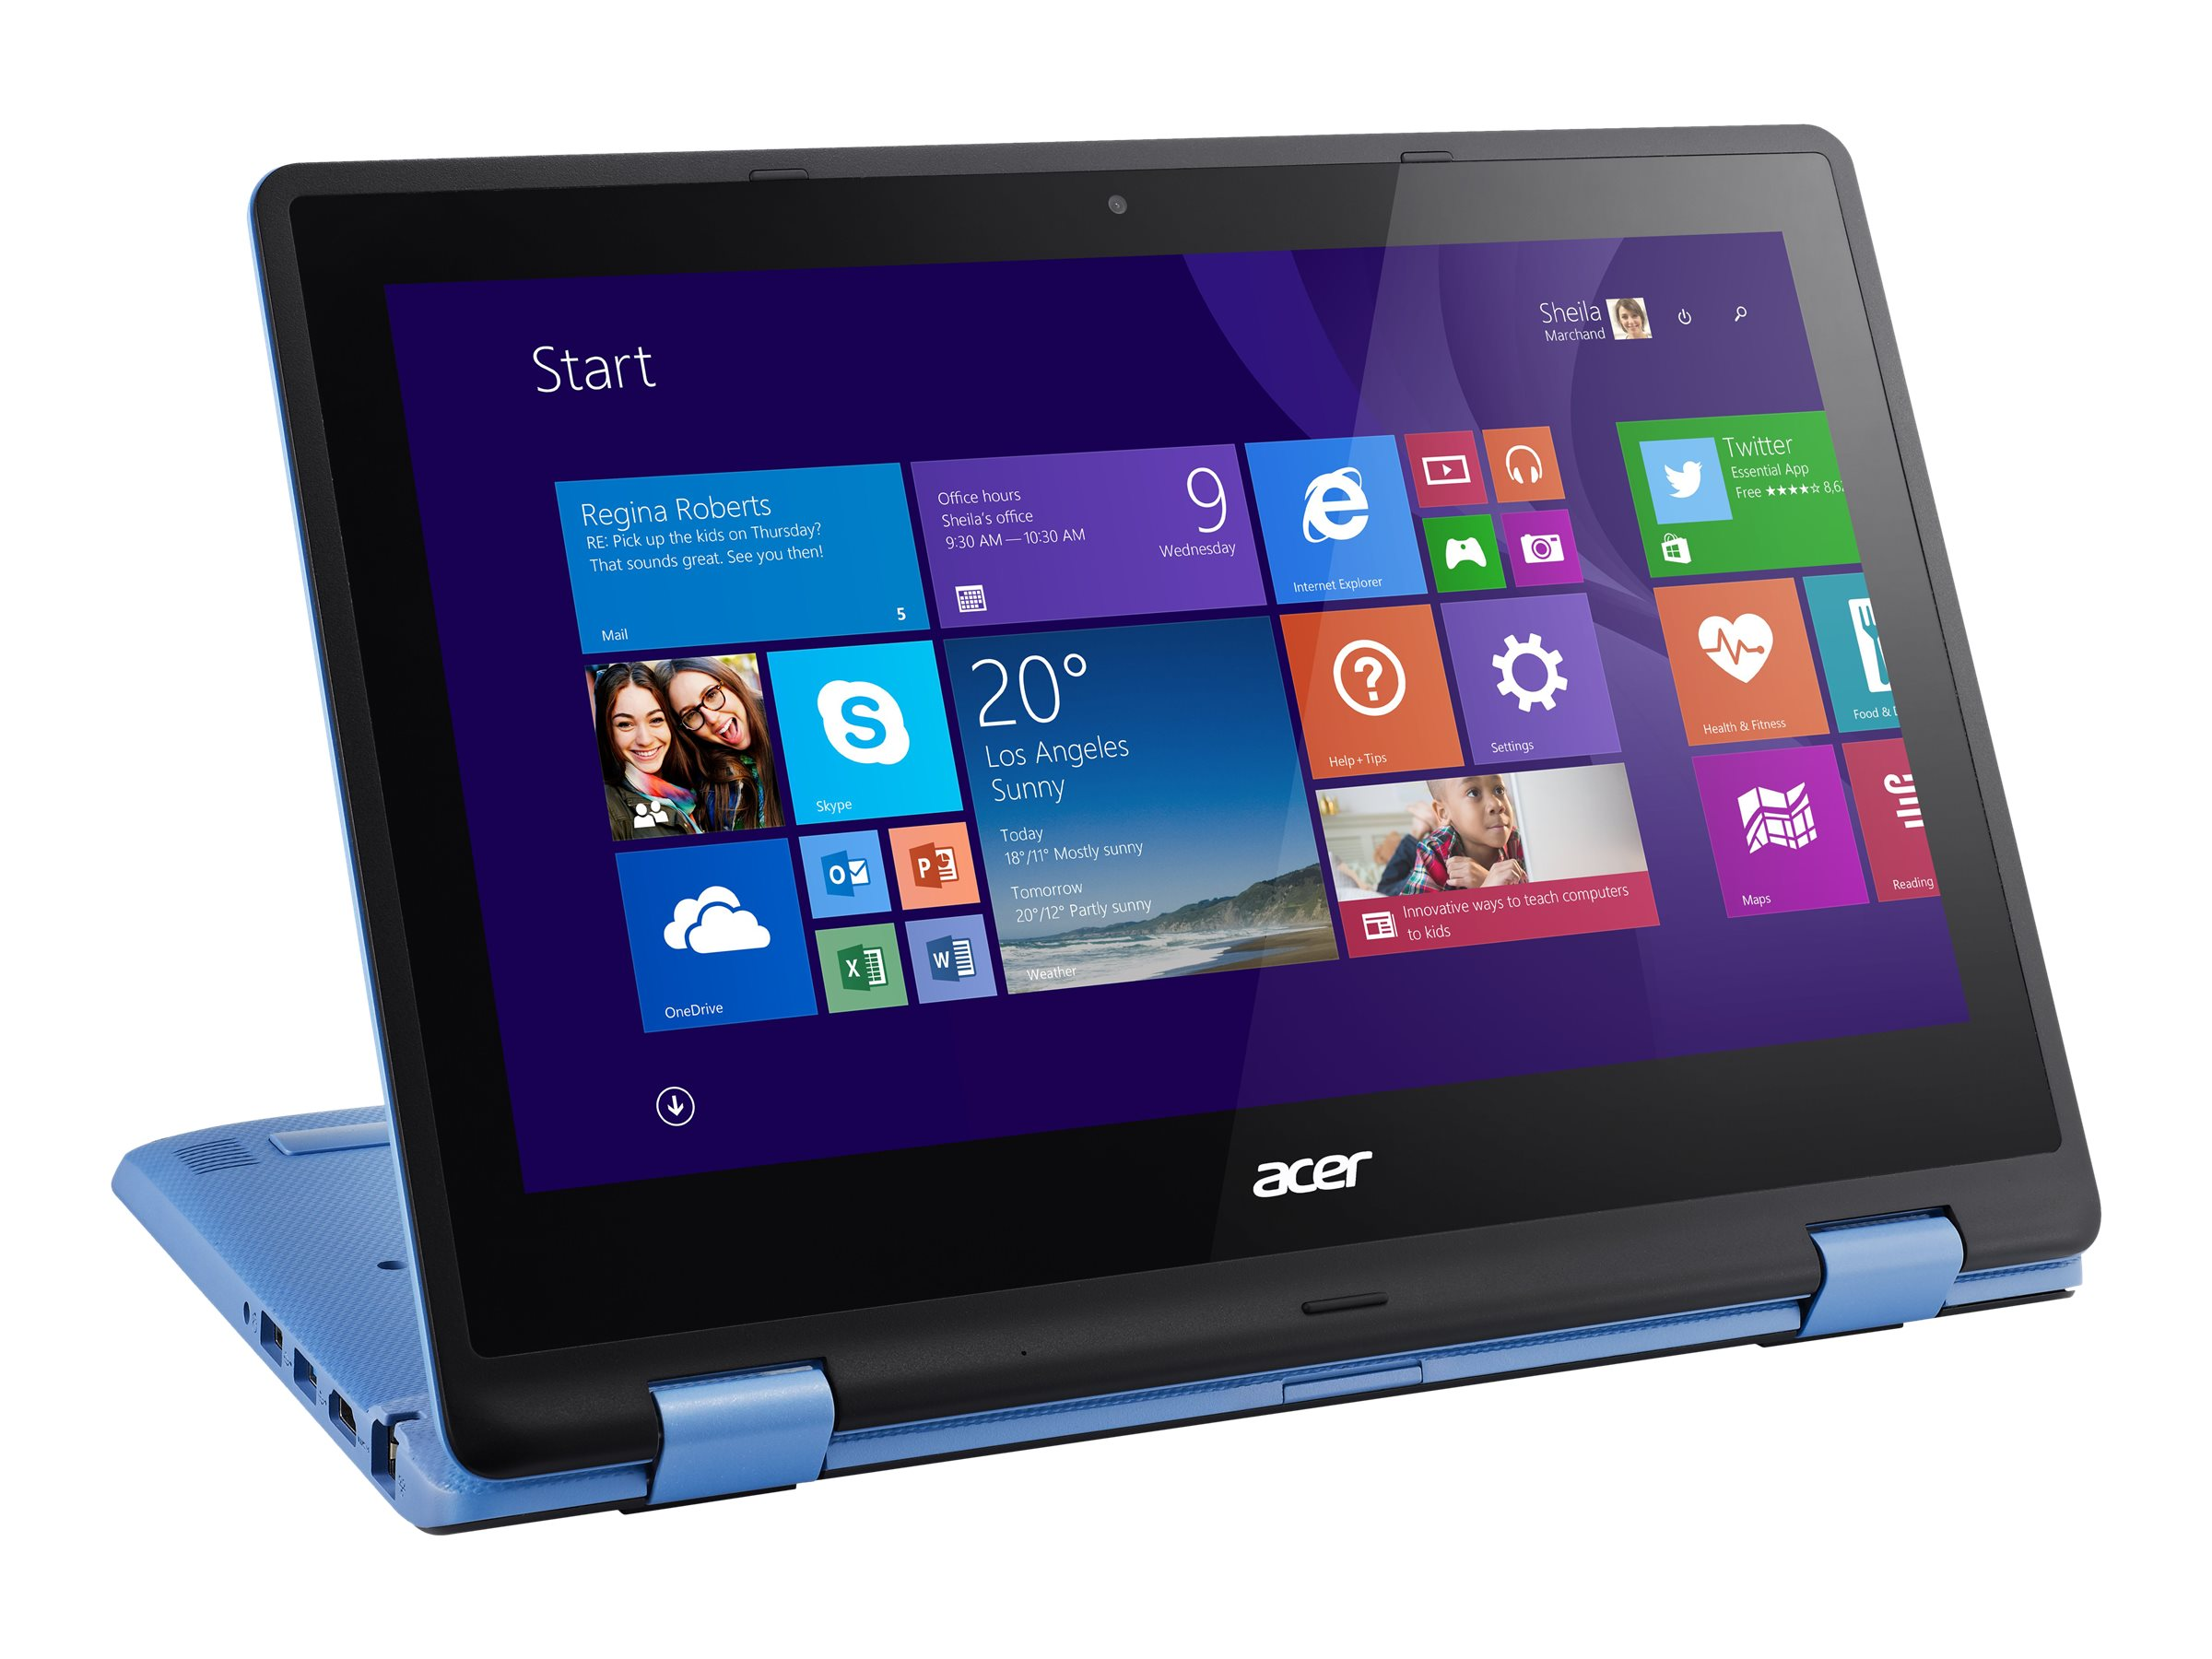 Acer NX.G10AA.008 Image 11